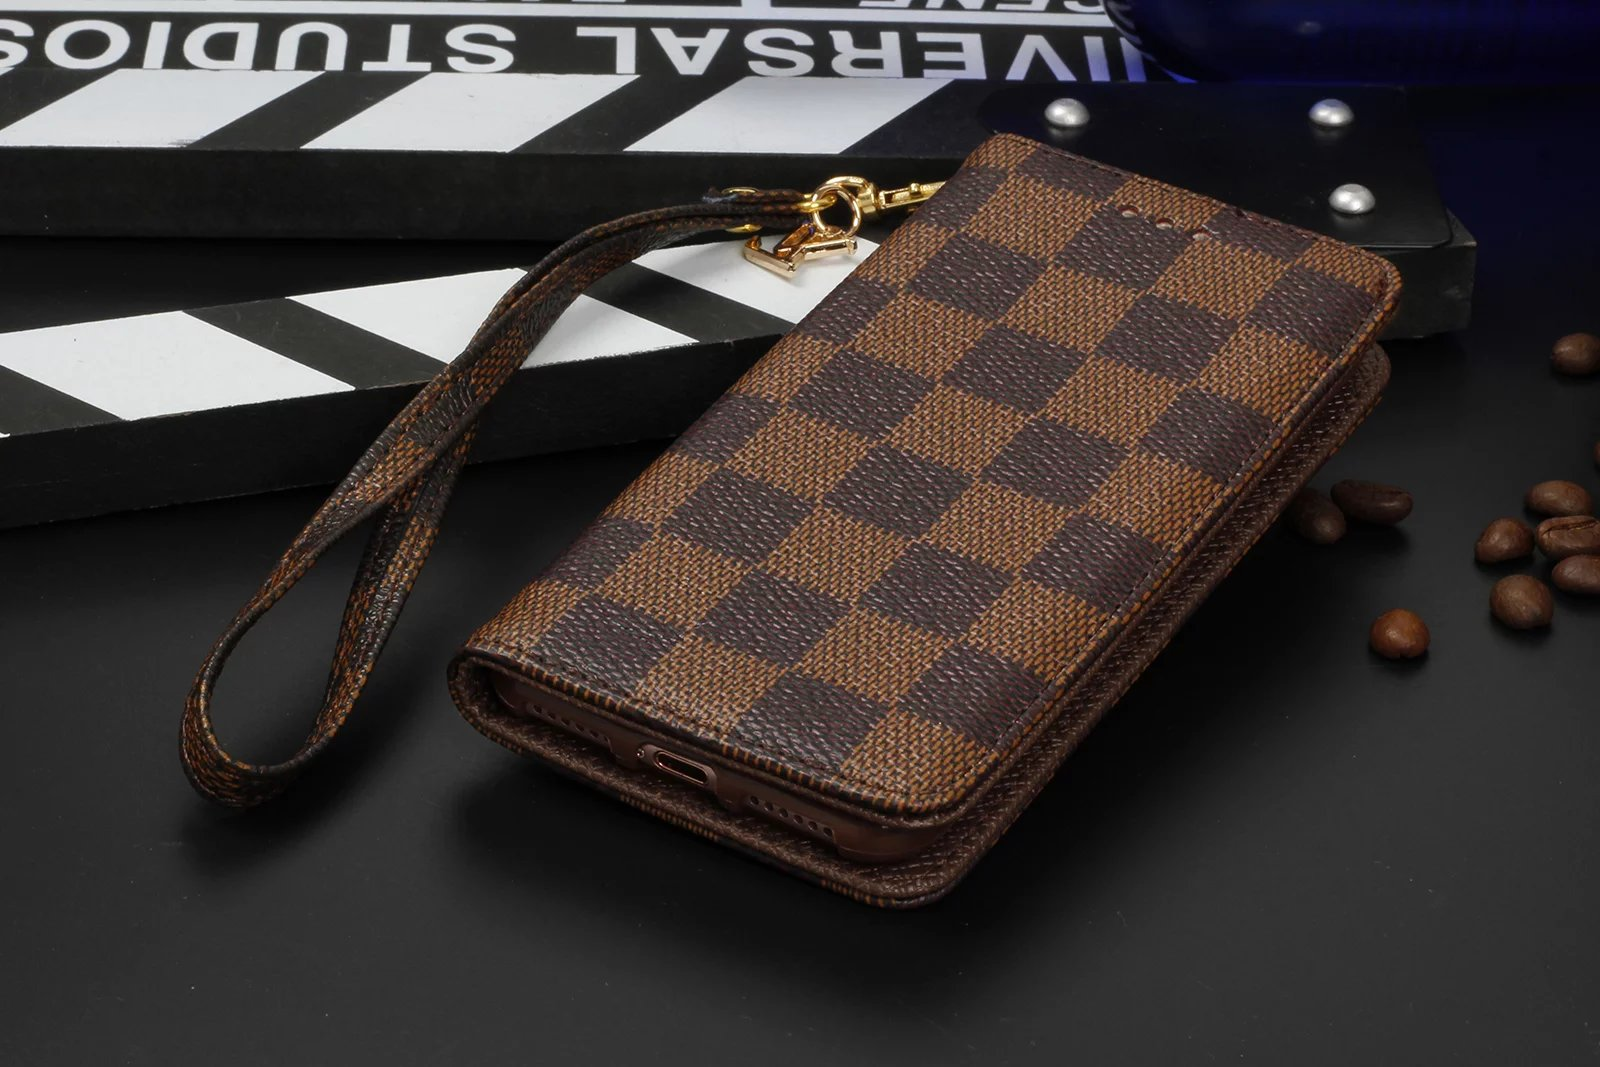 iphone case mit foto iphone hülle selber machen Louis Vuitton iphone 8 hüllen handy ledertasche iphone 8 fotos auf iphone iphone 8 hülle silikon coole iphone 8 hüllen iphone 8 und 8 iphone 8 hutztasche